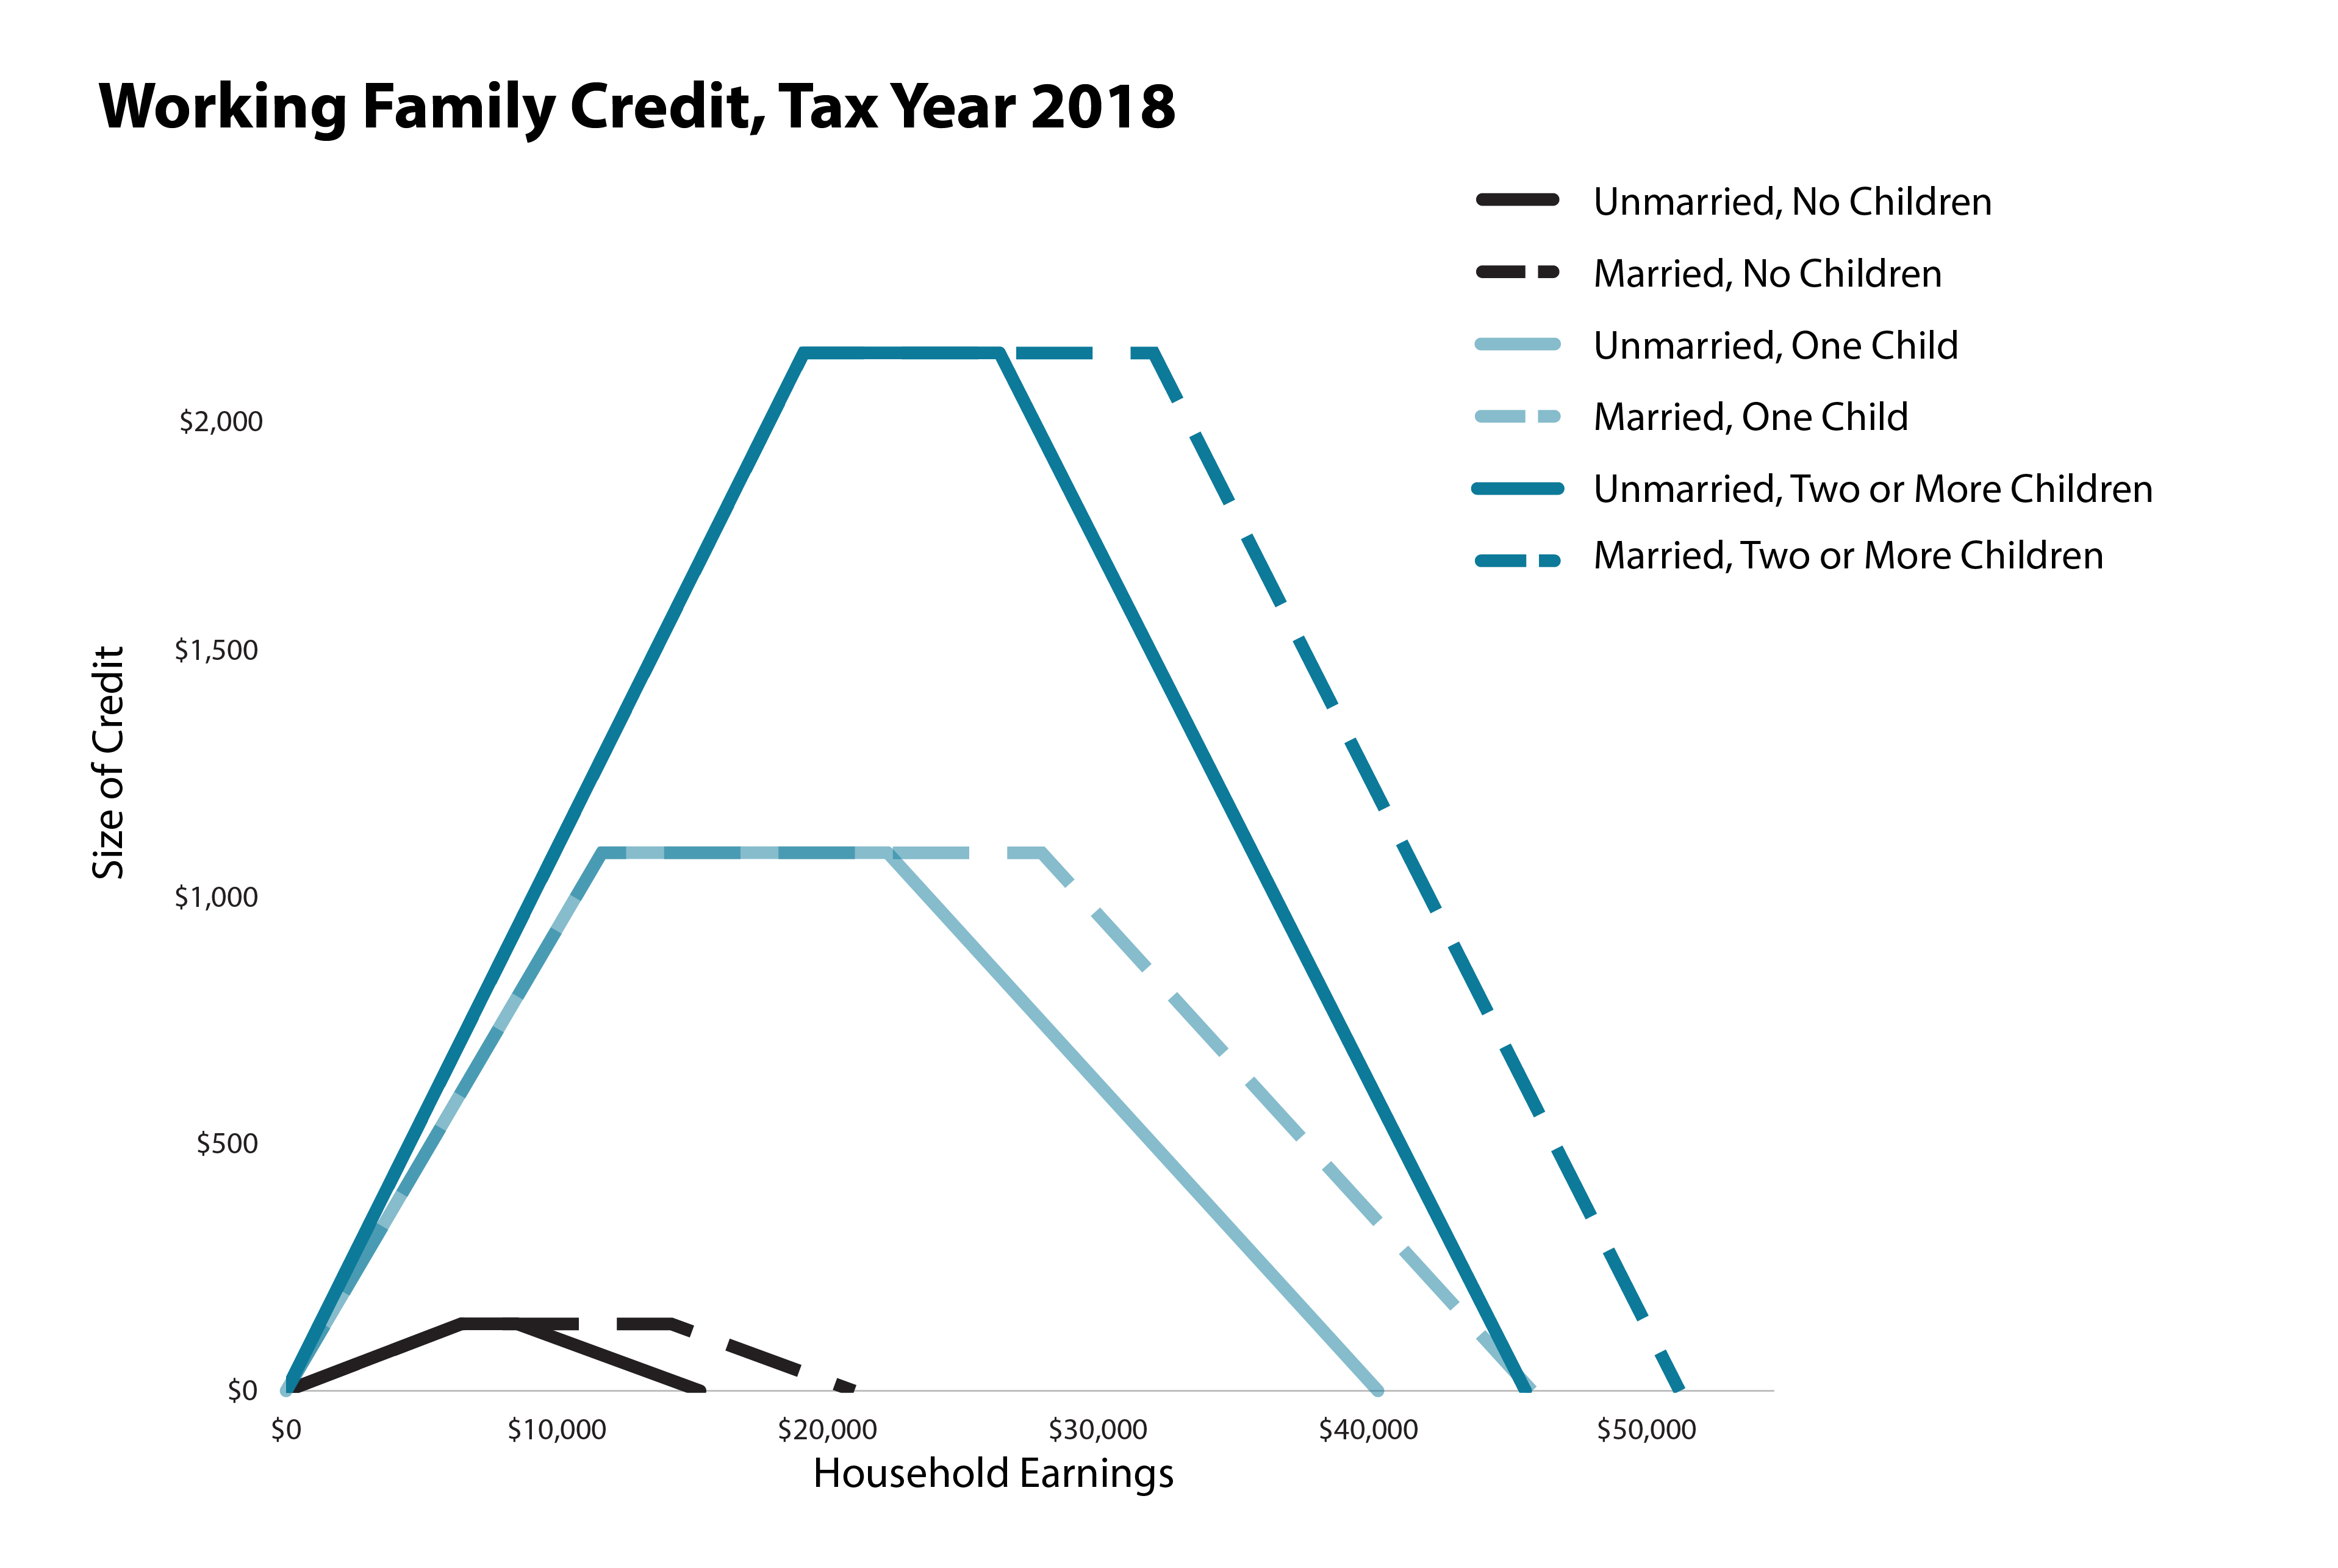 Graph: Working Family Credit, Tax Year 2018